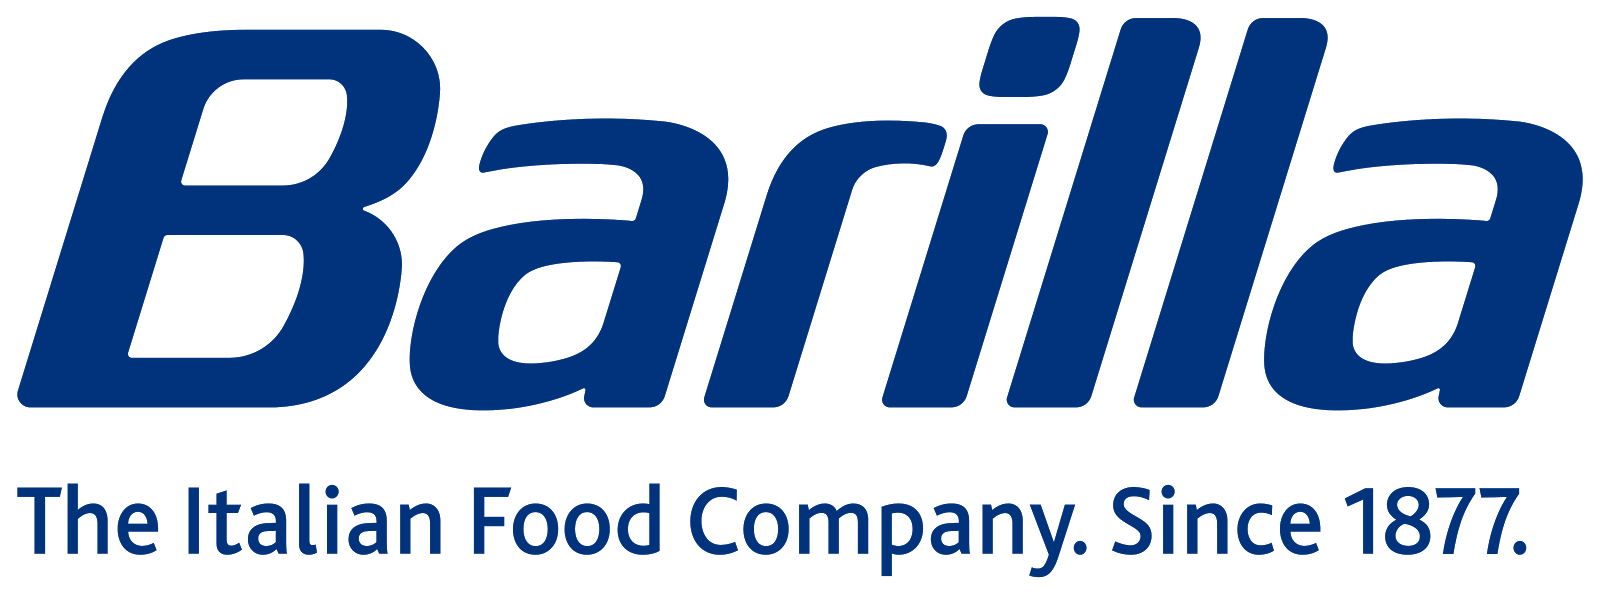 Major Sponsor - Barilla